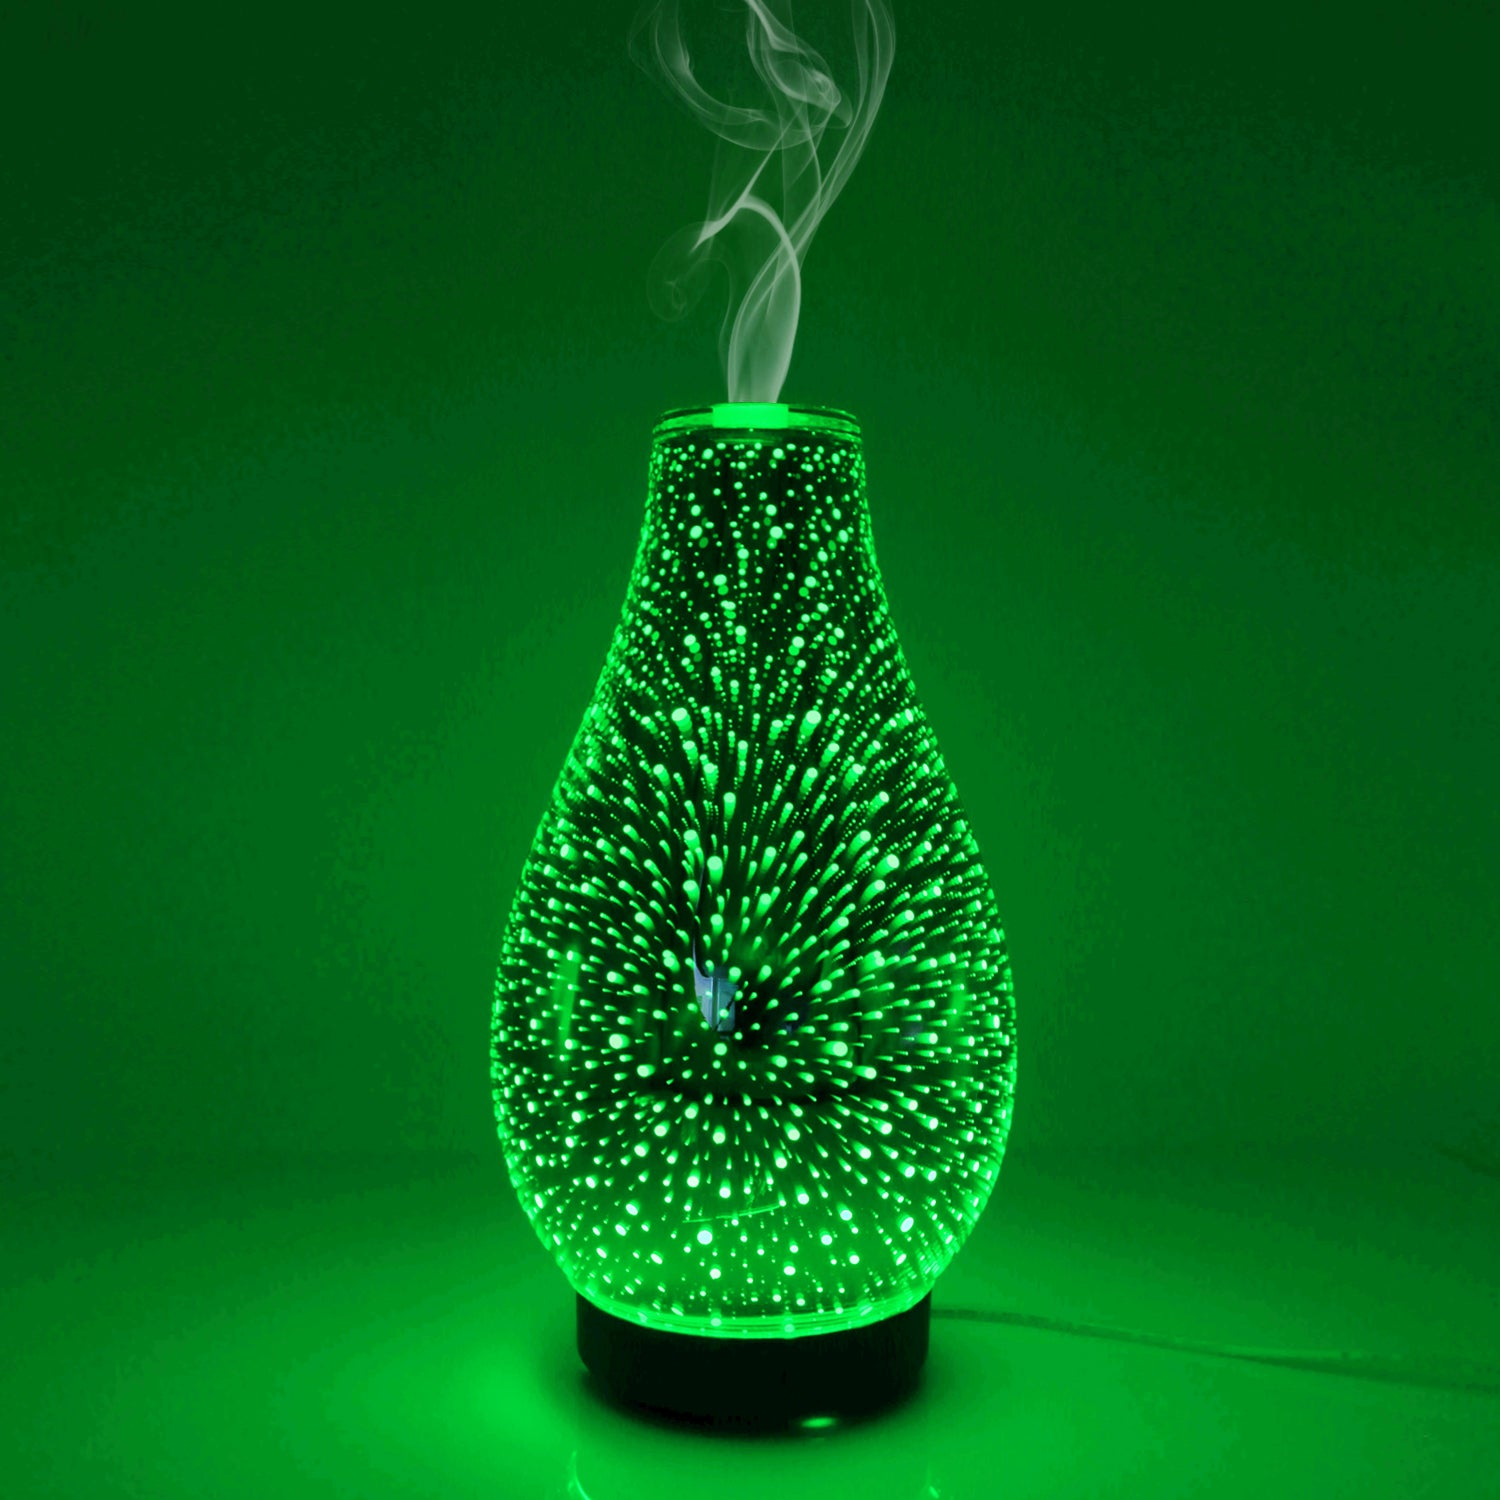 Big Mouth FireVase - Firework Humidifier & Oil Diffuser